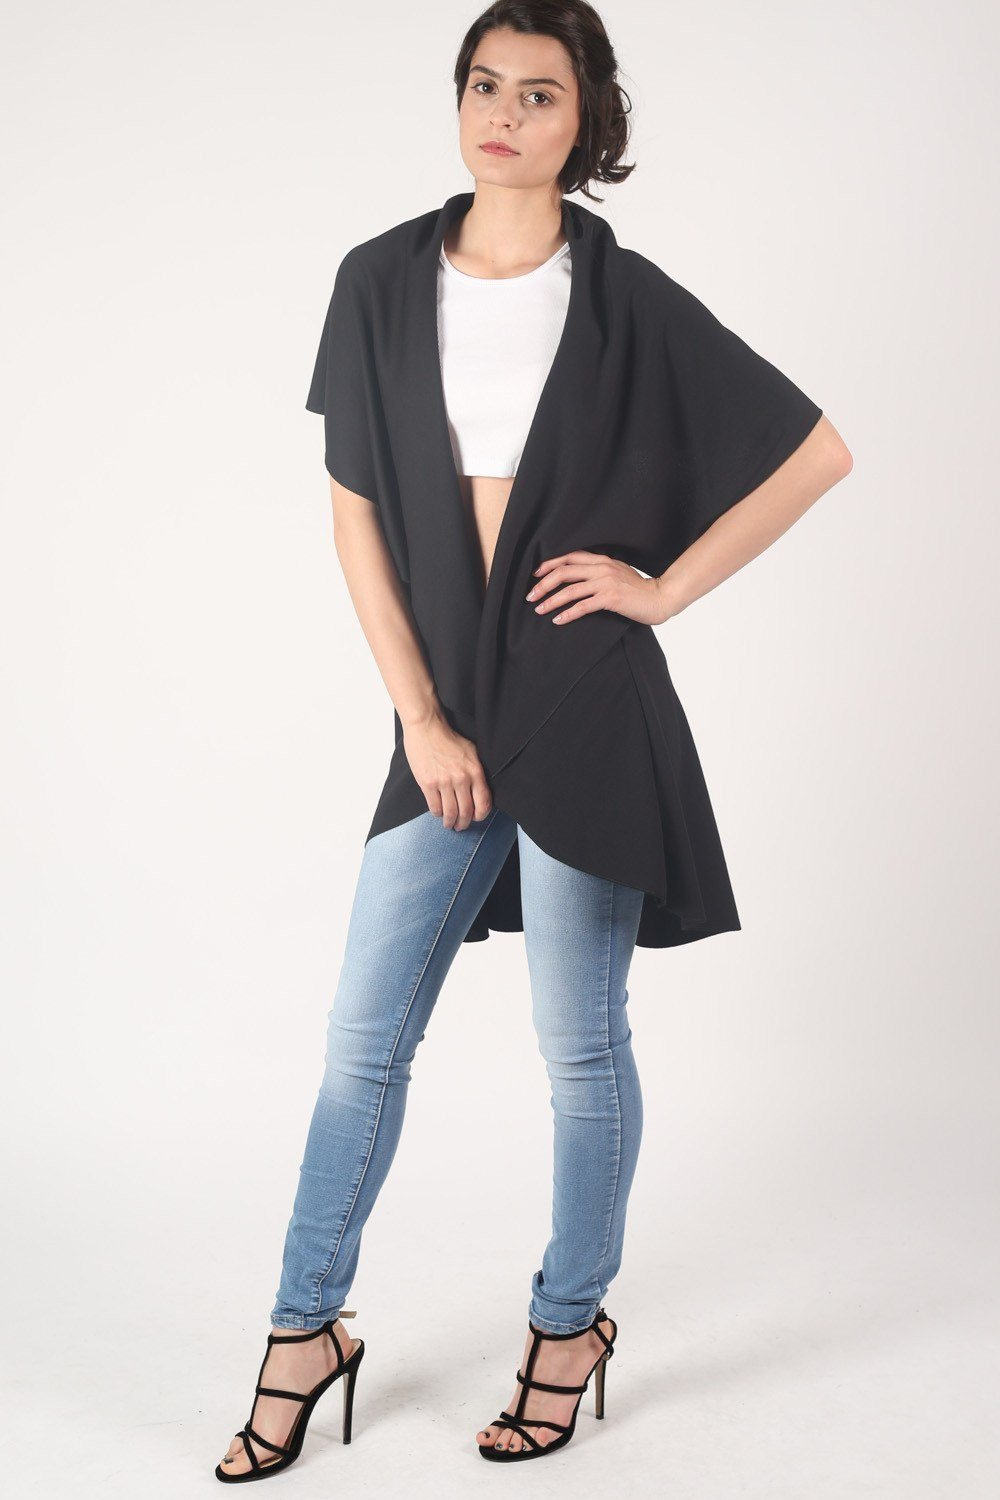 Textured Sleeveless Waterfall Jacket in Black 0